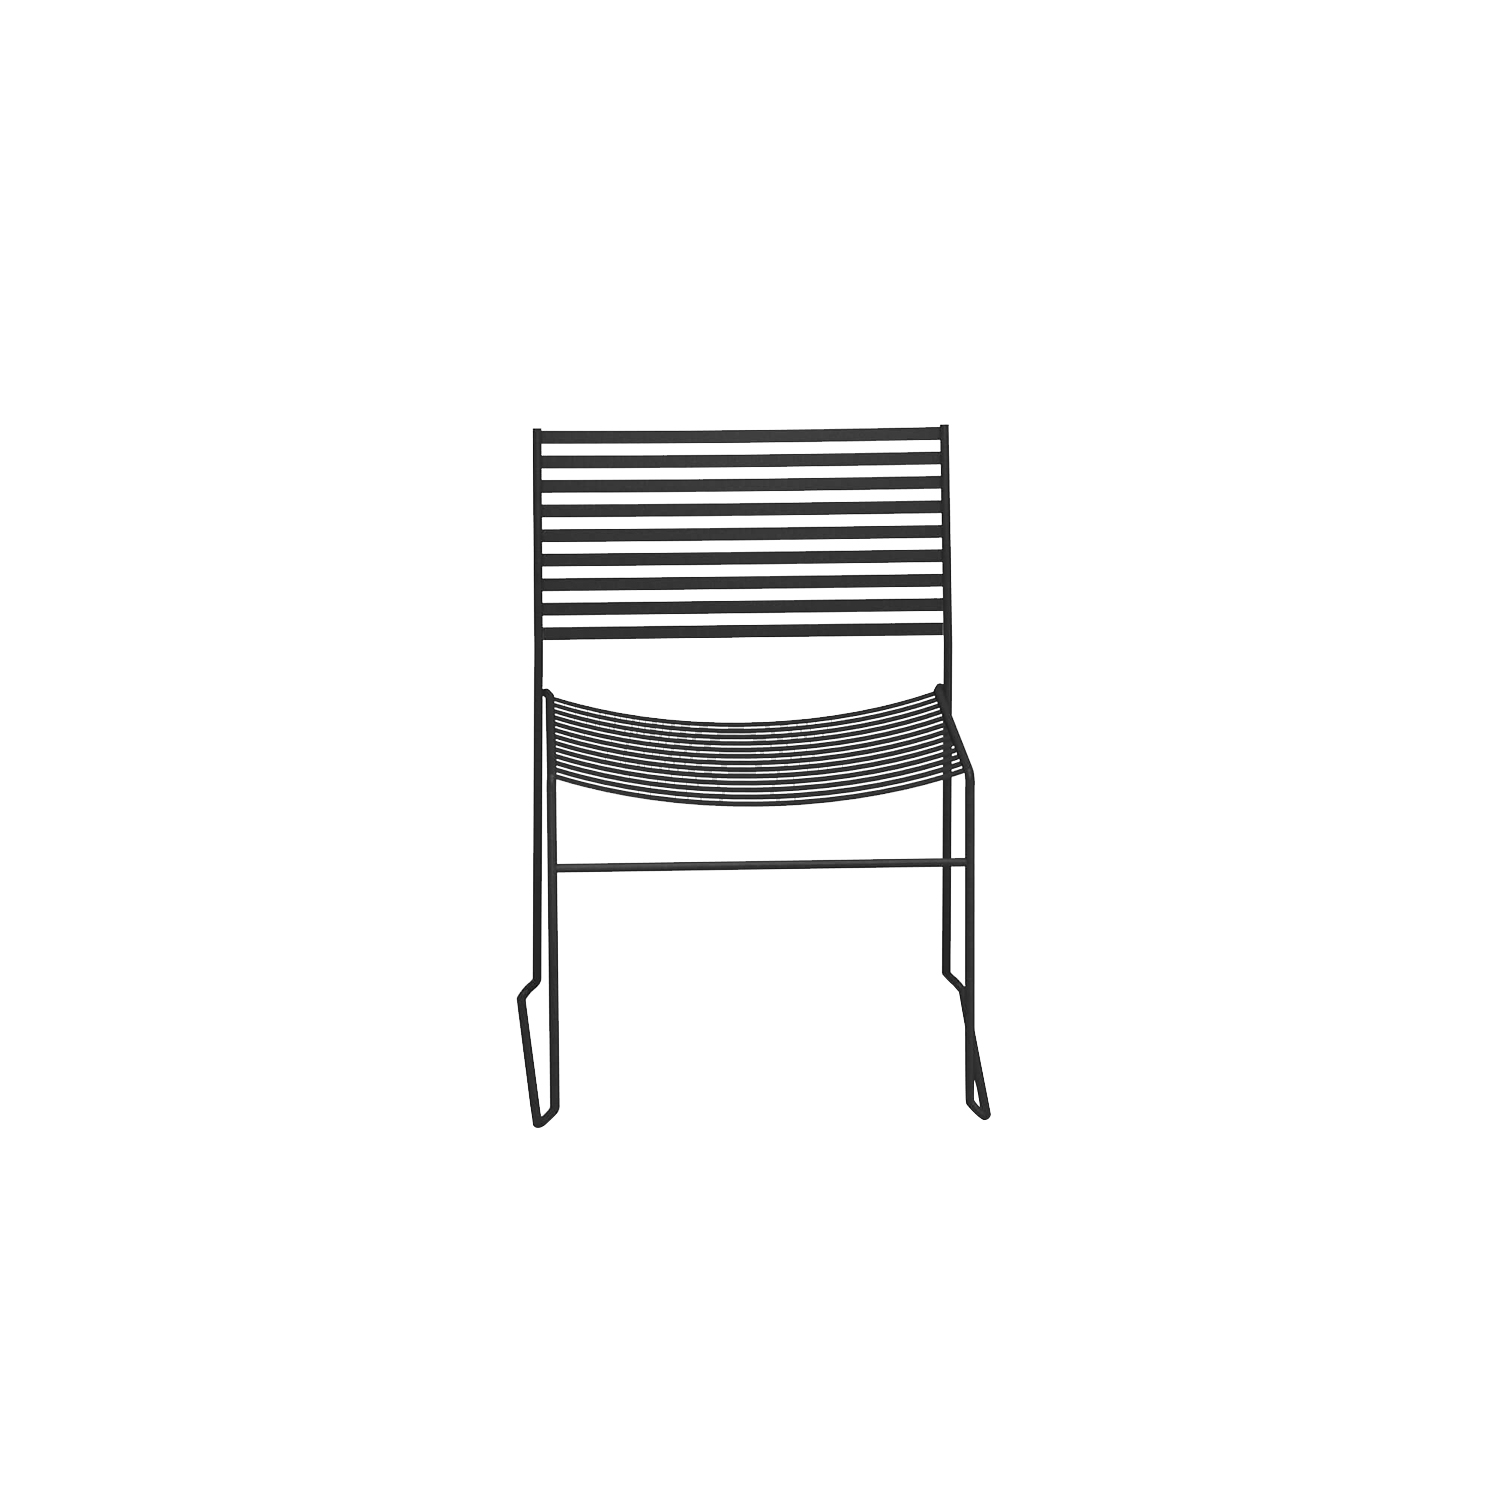 Aero Lounge Chair - Set of 2 - <p>Aero, marked by a contemporary design and striking, structural and geometric lightness, presents pieces of furniture versatile and adaptable to any context. The range comprises relaxing armchairs, chairs and stools, for both residential and contract settings.</p>This lounge chair can come in Antique Iron, Matt White or Black and can be placed outdoors. Please enquire for more information.